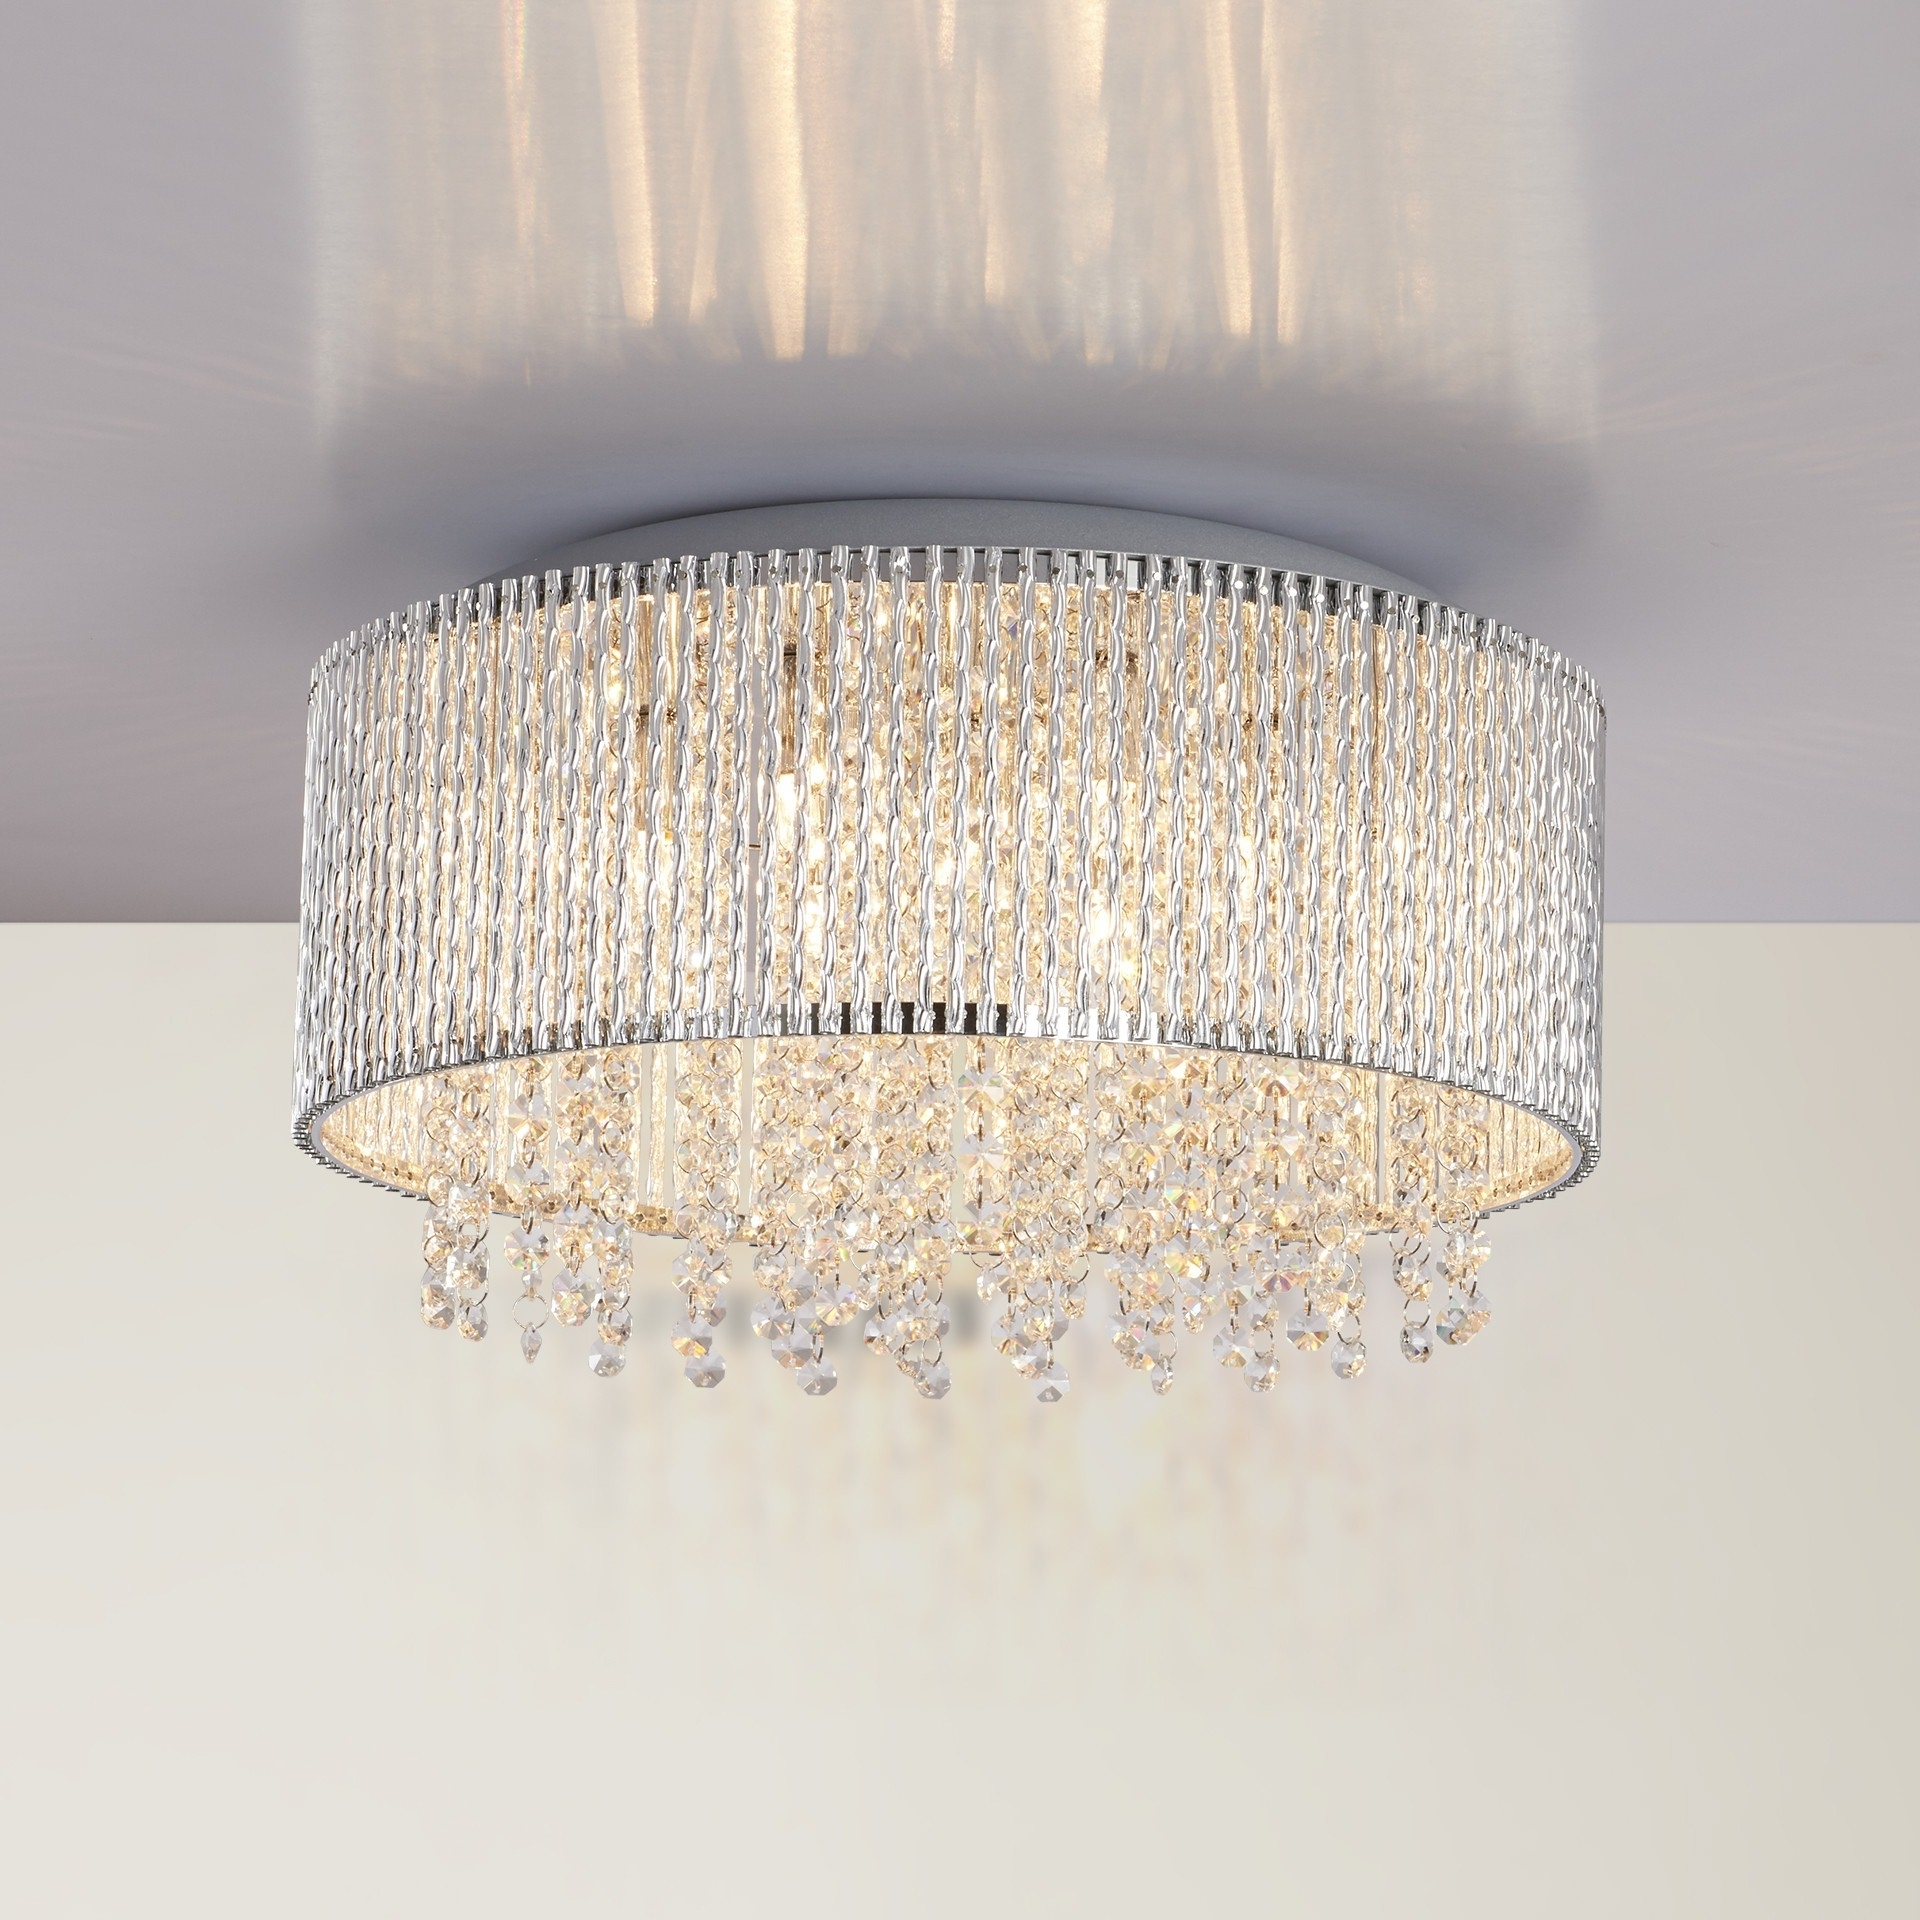 Chandeliers Design : Wonderful Trend Flush Chandelier For Small Home With 2019 Flush Chandelier (View 5 of 20)